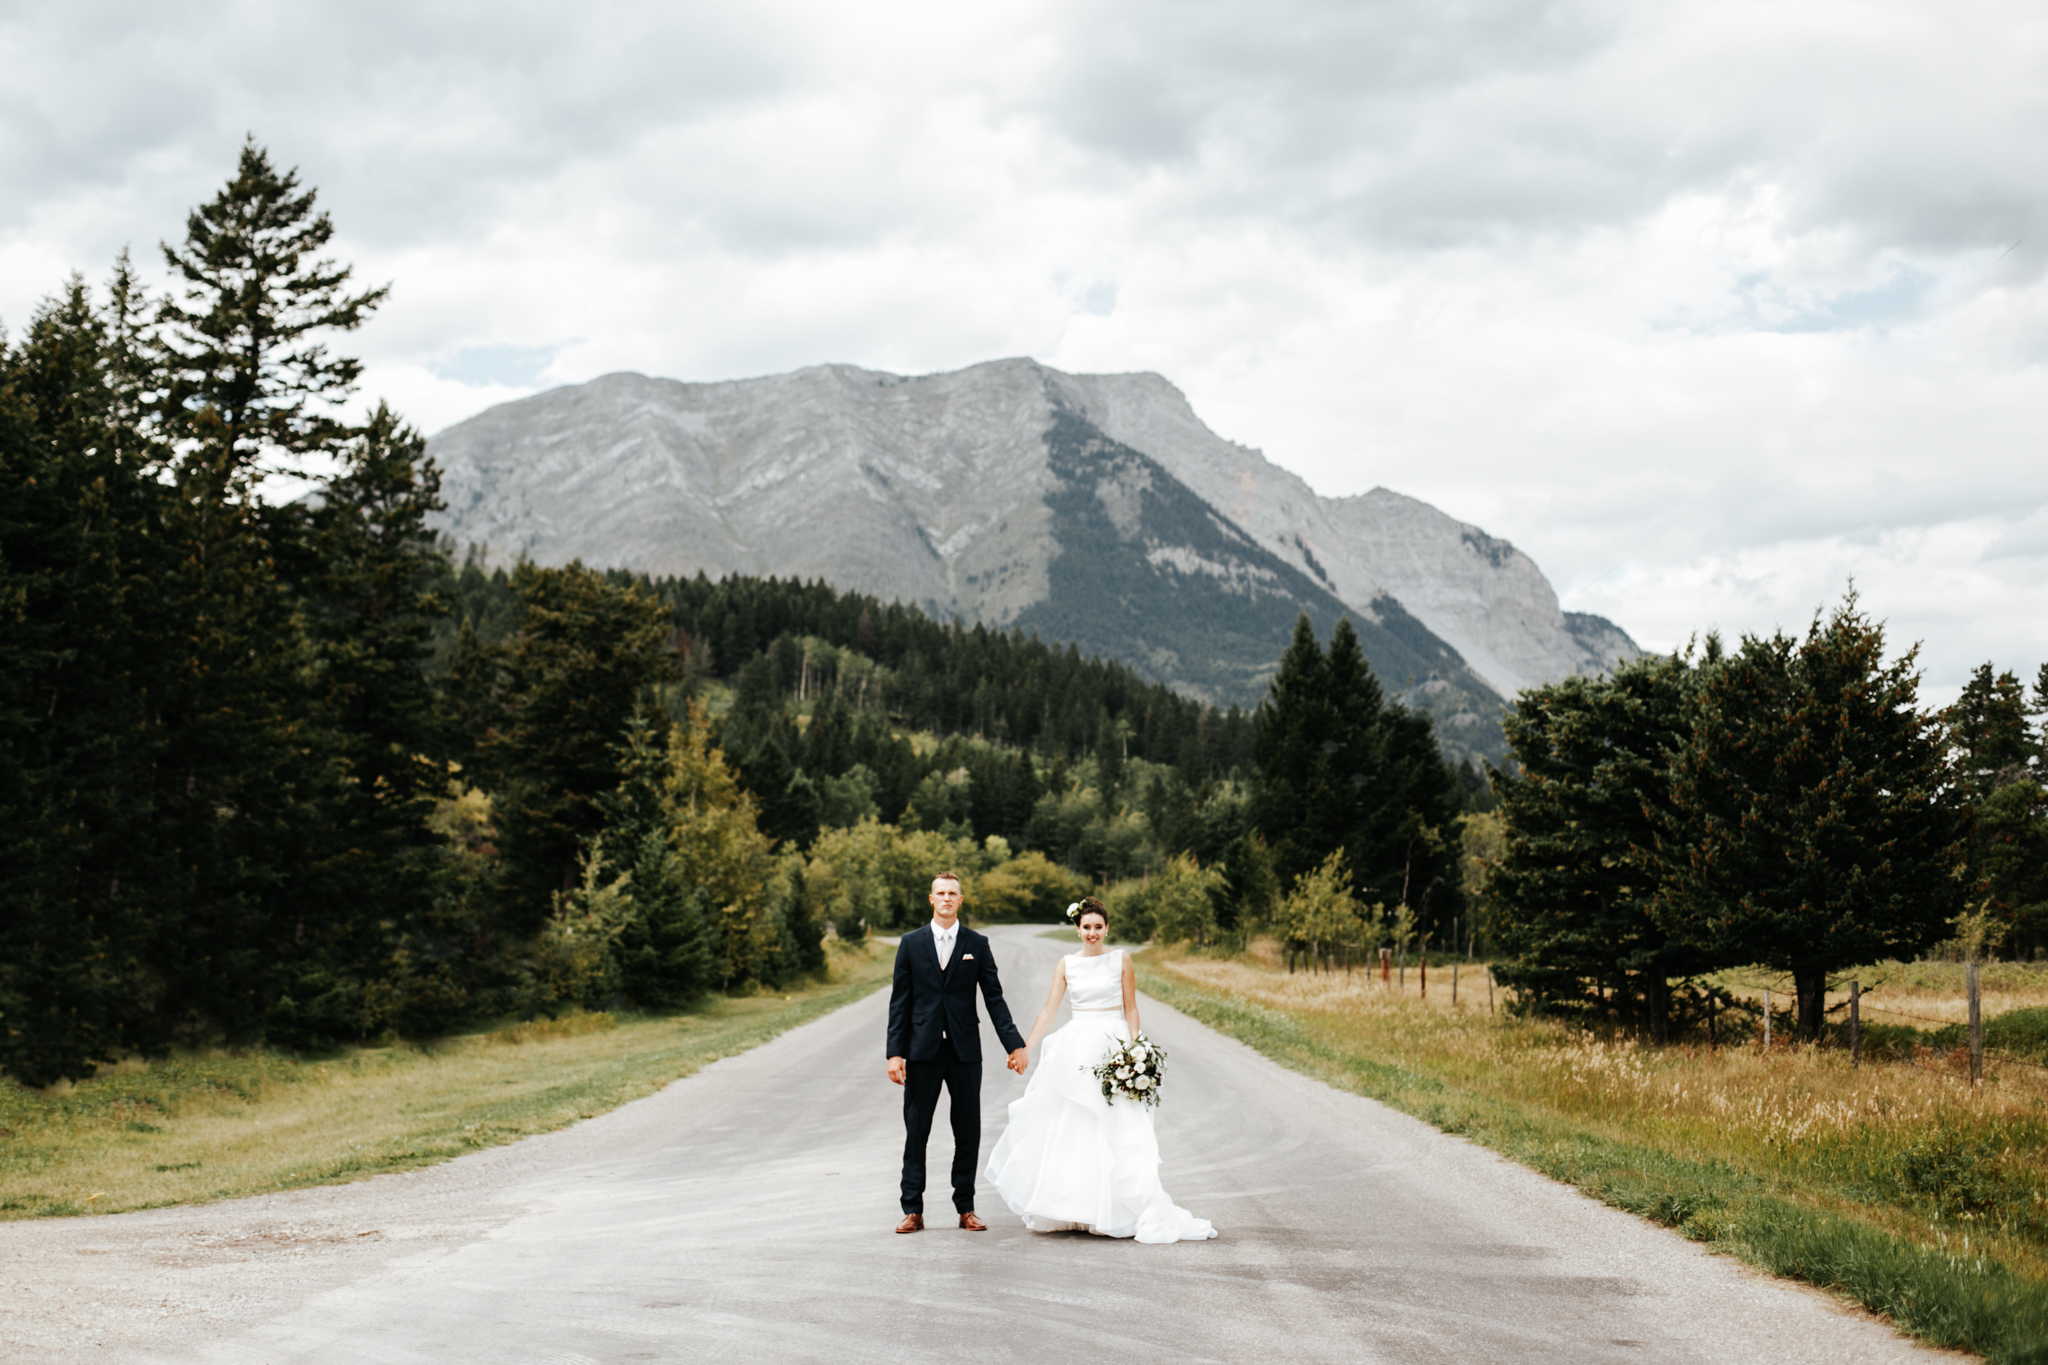 lethbridge-wedding-photographer-love-and-be-loved-photography-kurtis-beth-springbreak-flower-farm-crowsnest-pass-mountain-picture-image-photo-4.jpg